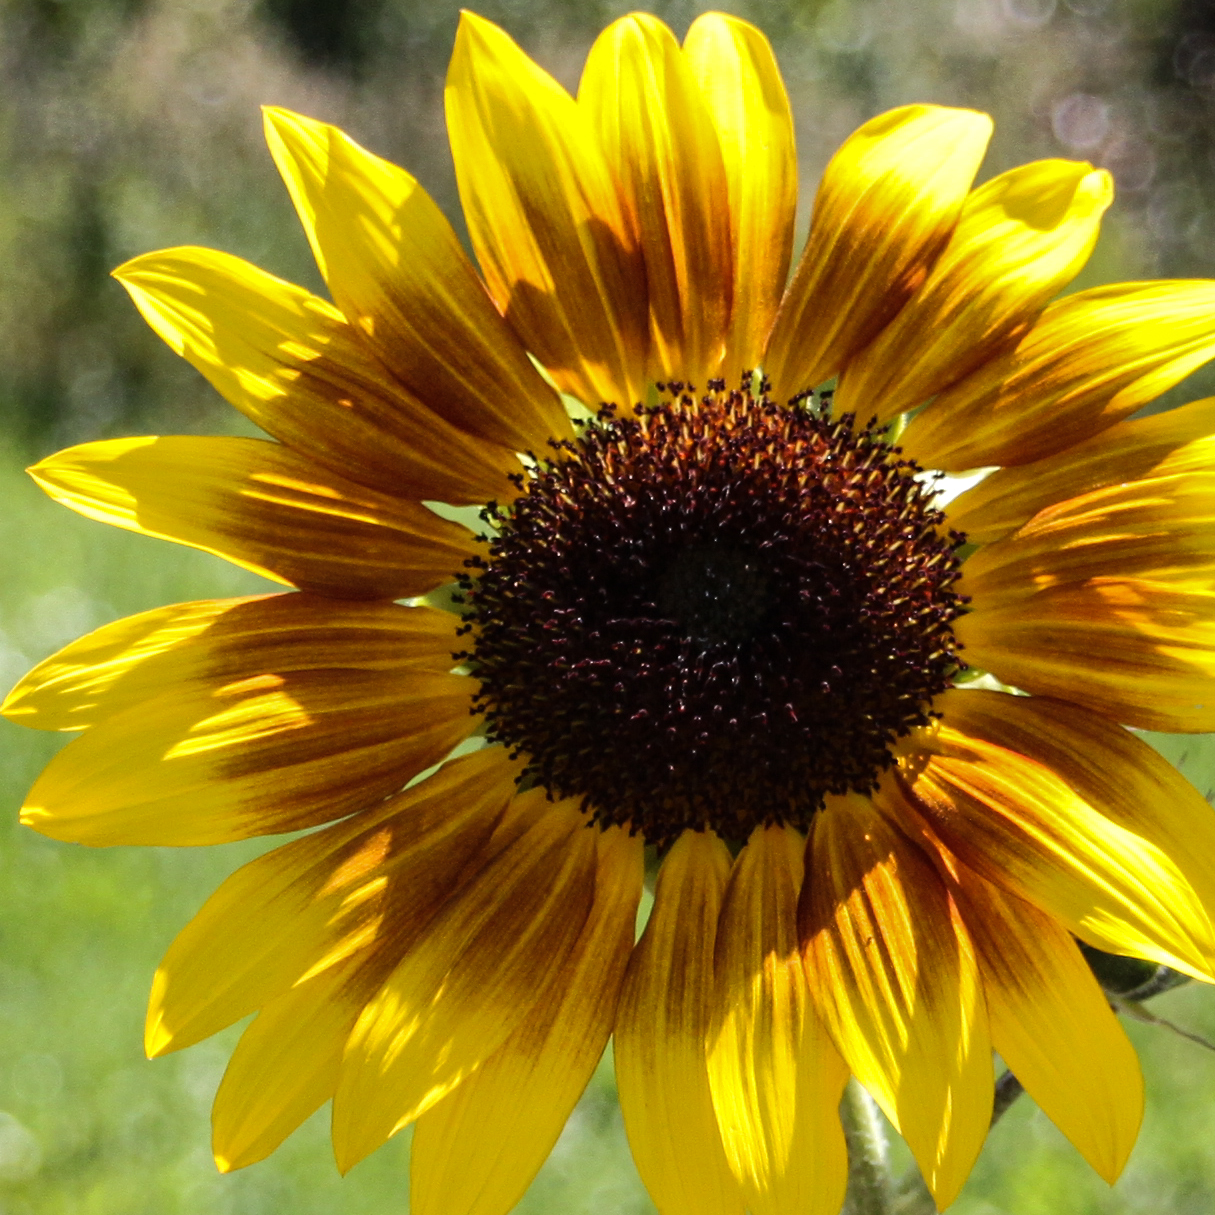 Sunflower enlargement. Submitted by G. Fredric Reynolds.